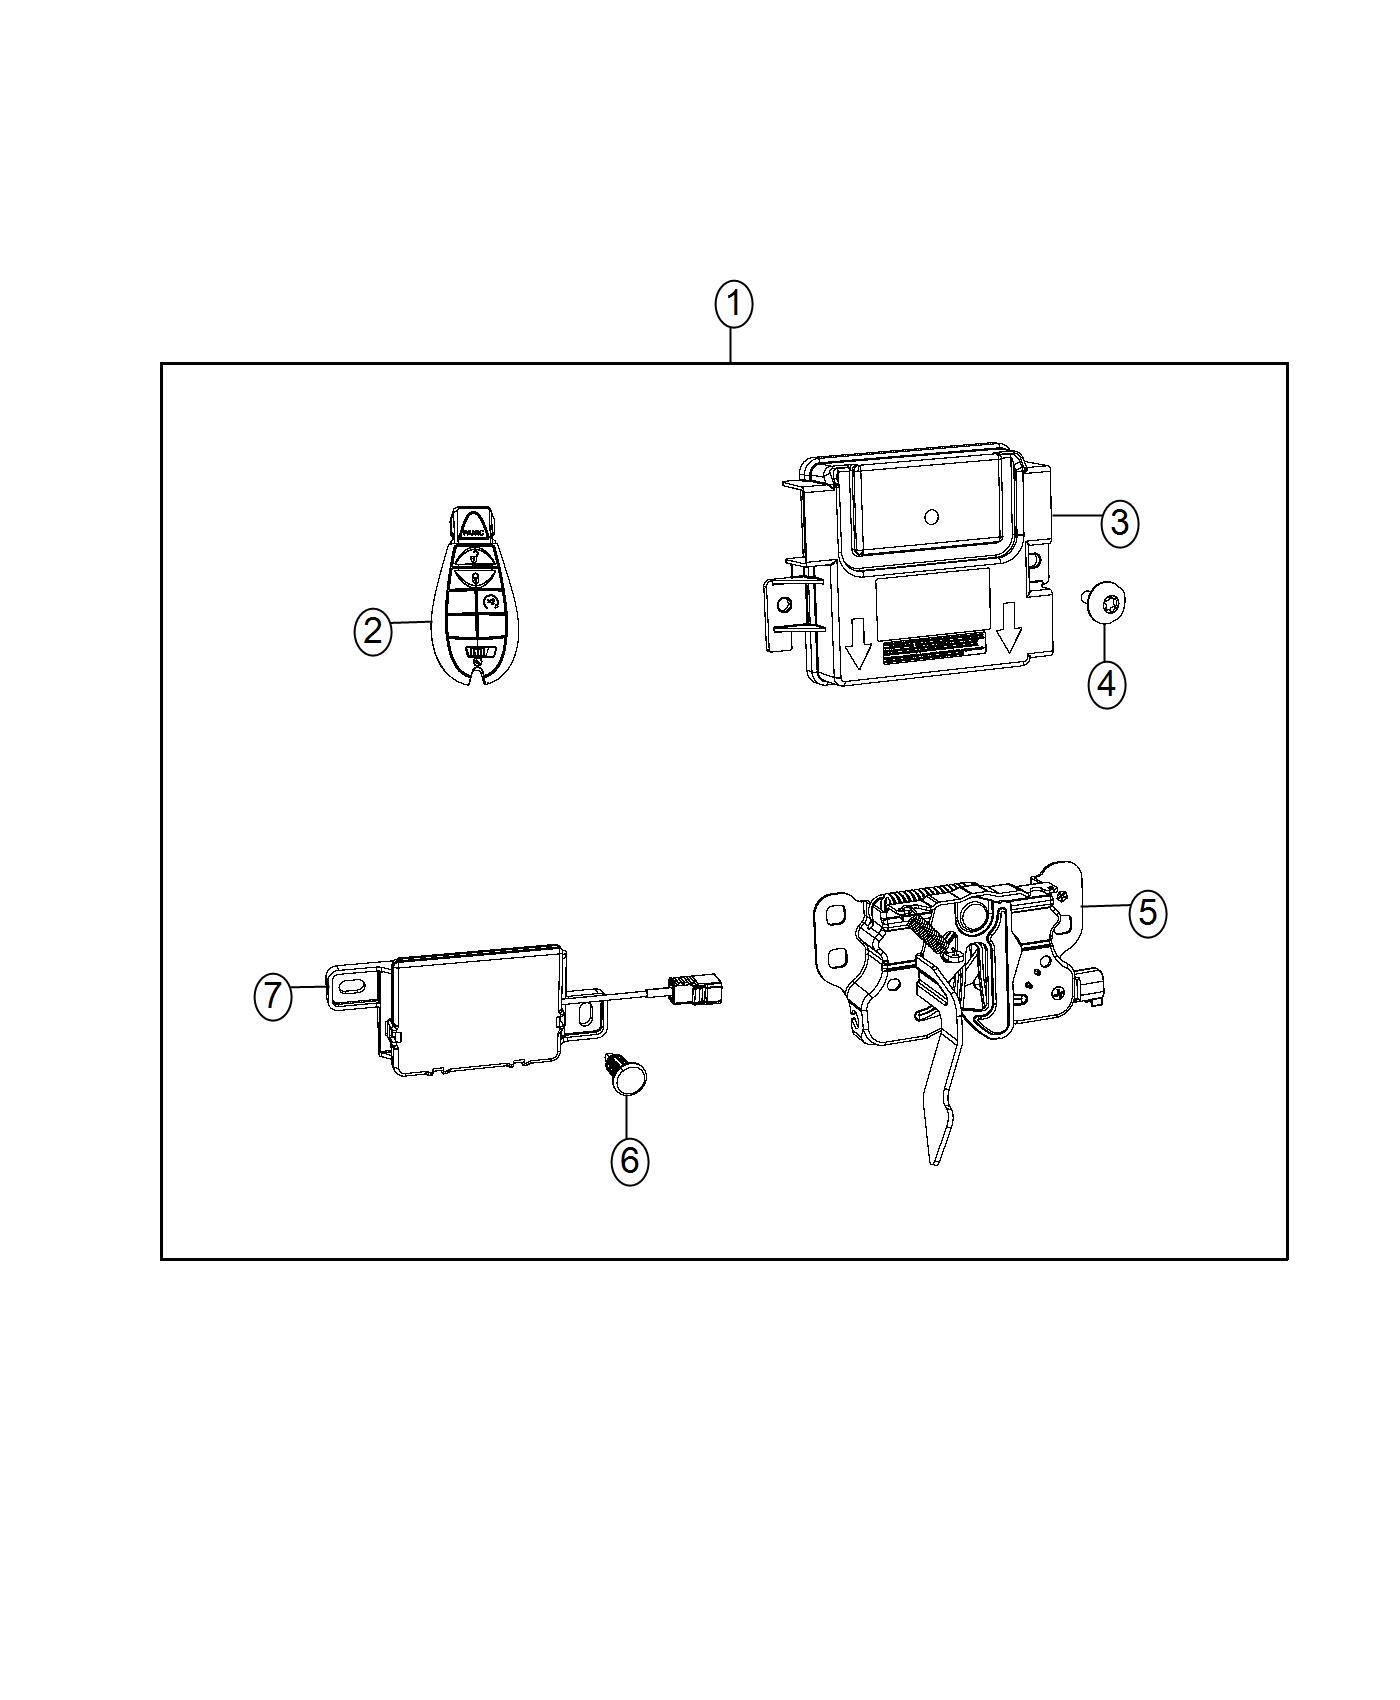 Ram Antenna Used For Remote Start And Keyless